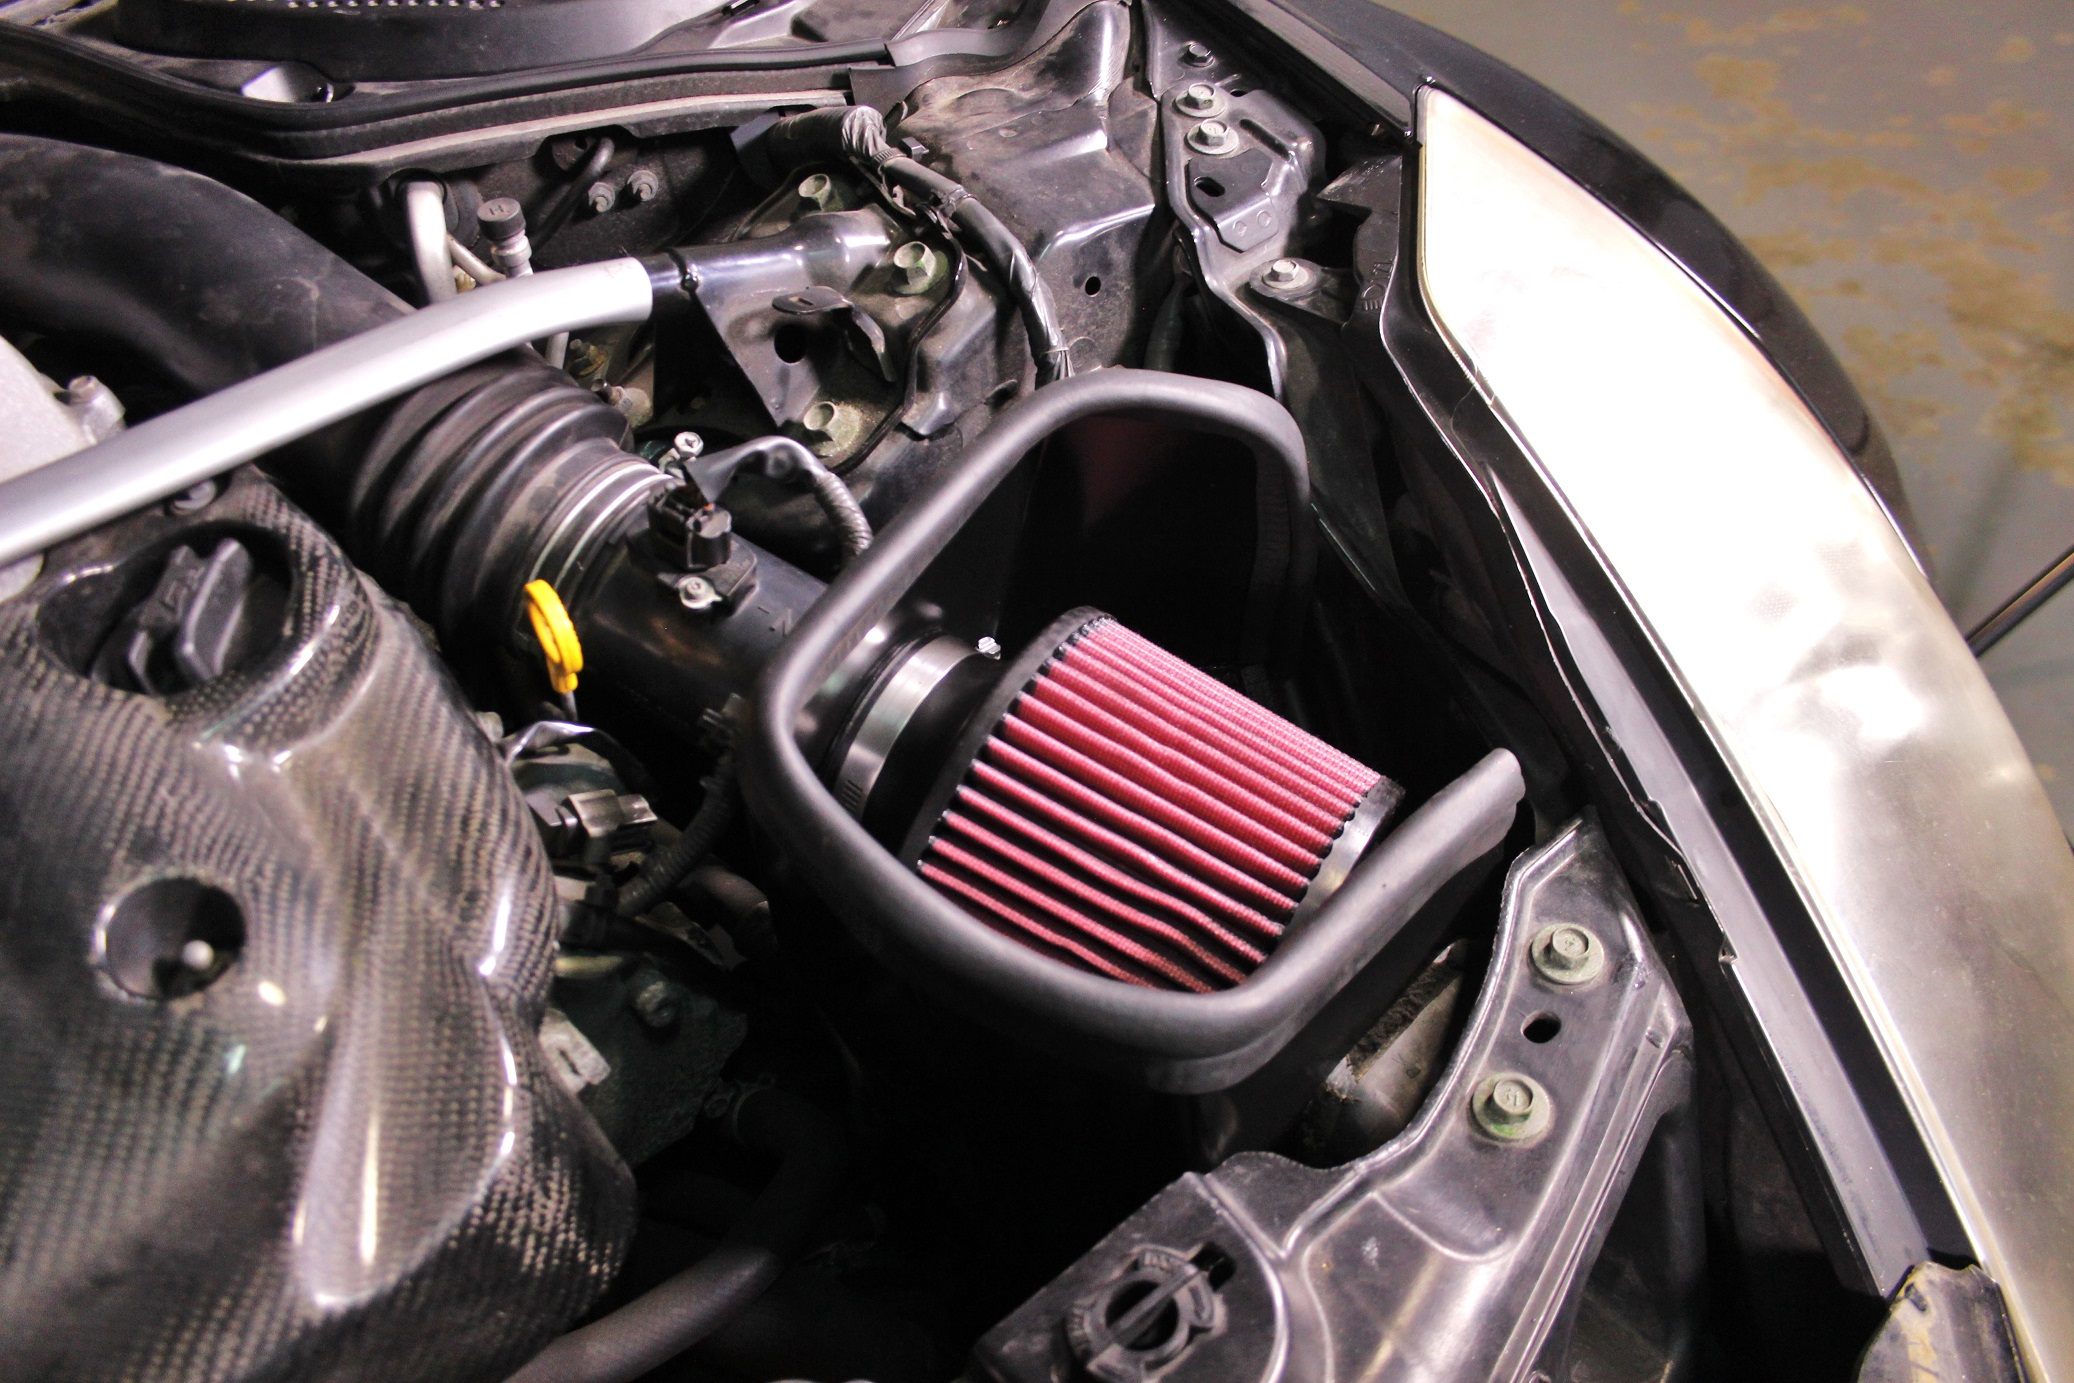 Mishimoto Performance Air Intake for 2003-06 Nissan 350Z [MMAI-350Z-03H]